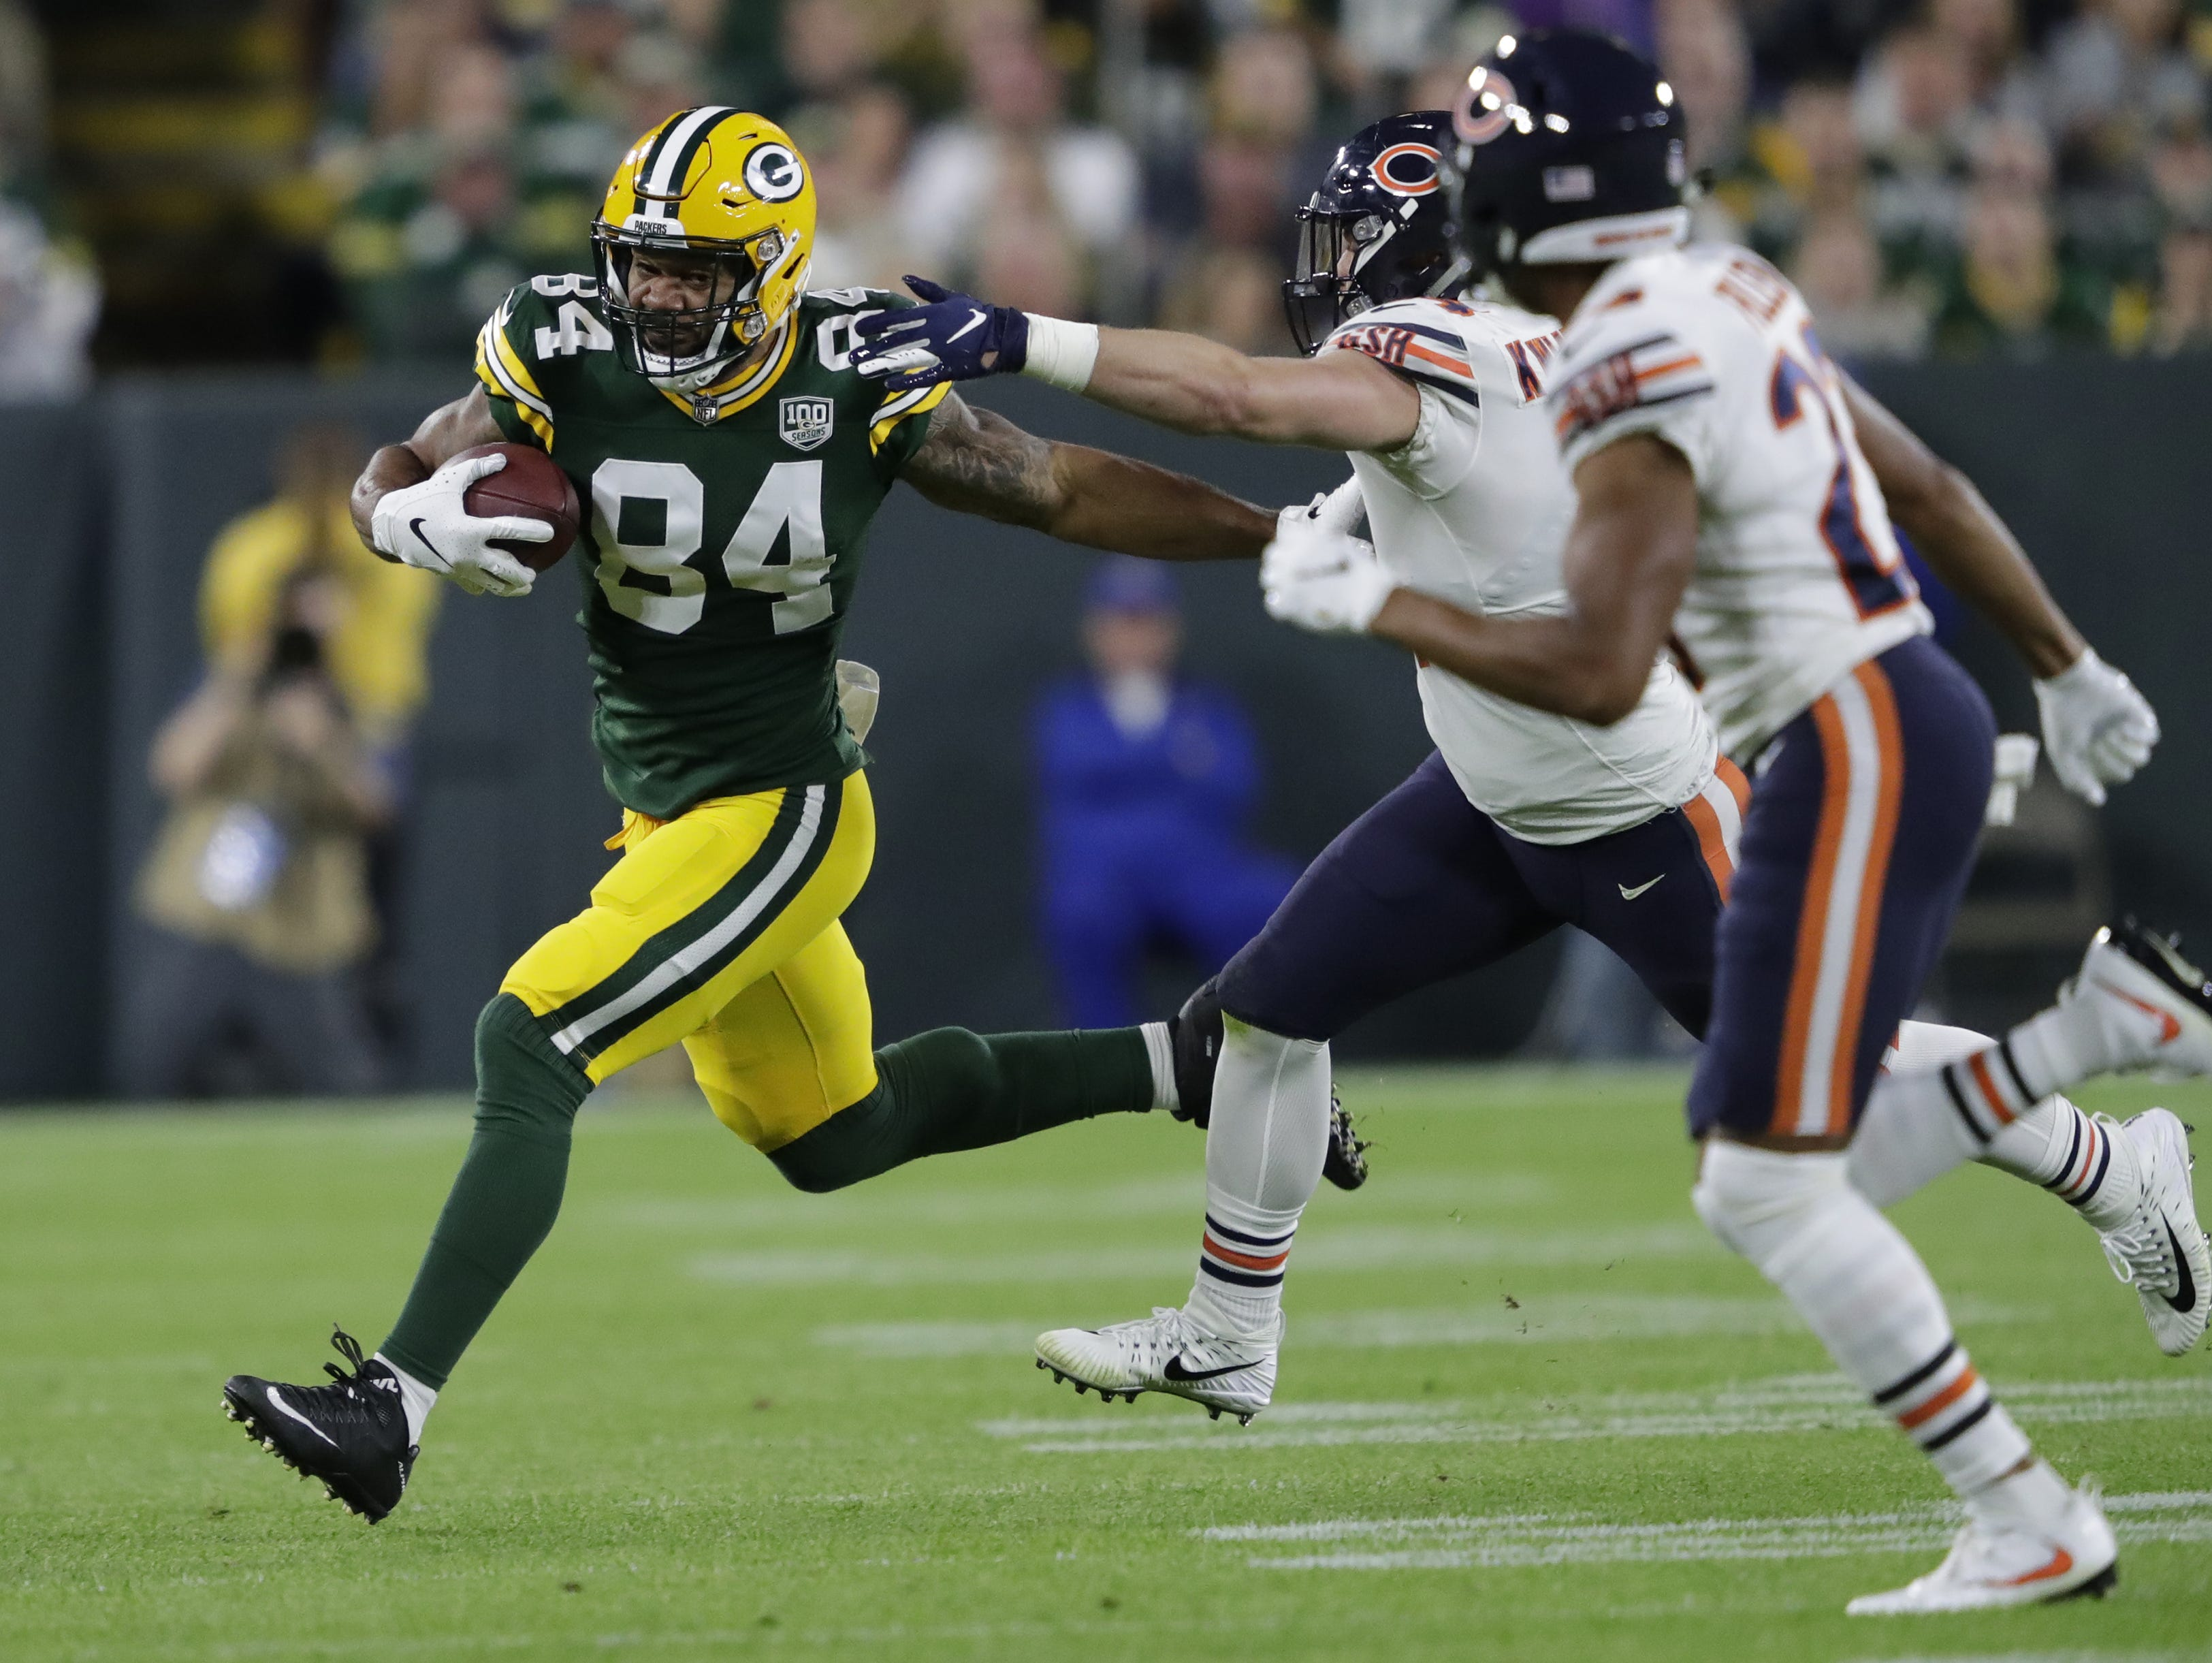 Green Bay Packers tight end Lance Kendricks (84) runs for a first down against the Chicago Bears Sunday, Sept. 9, 2018, at Lambeau Field in Green Bay, Wis.